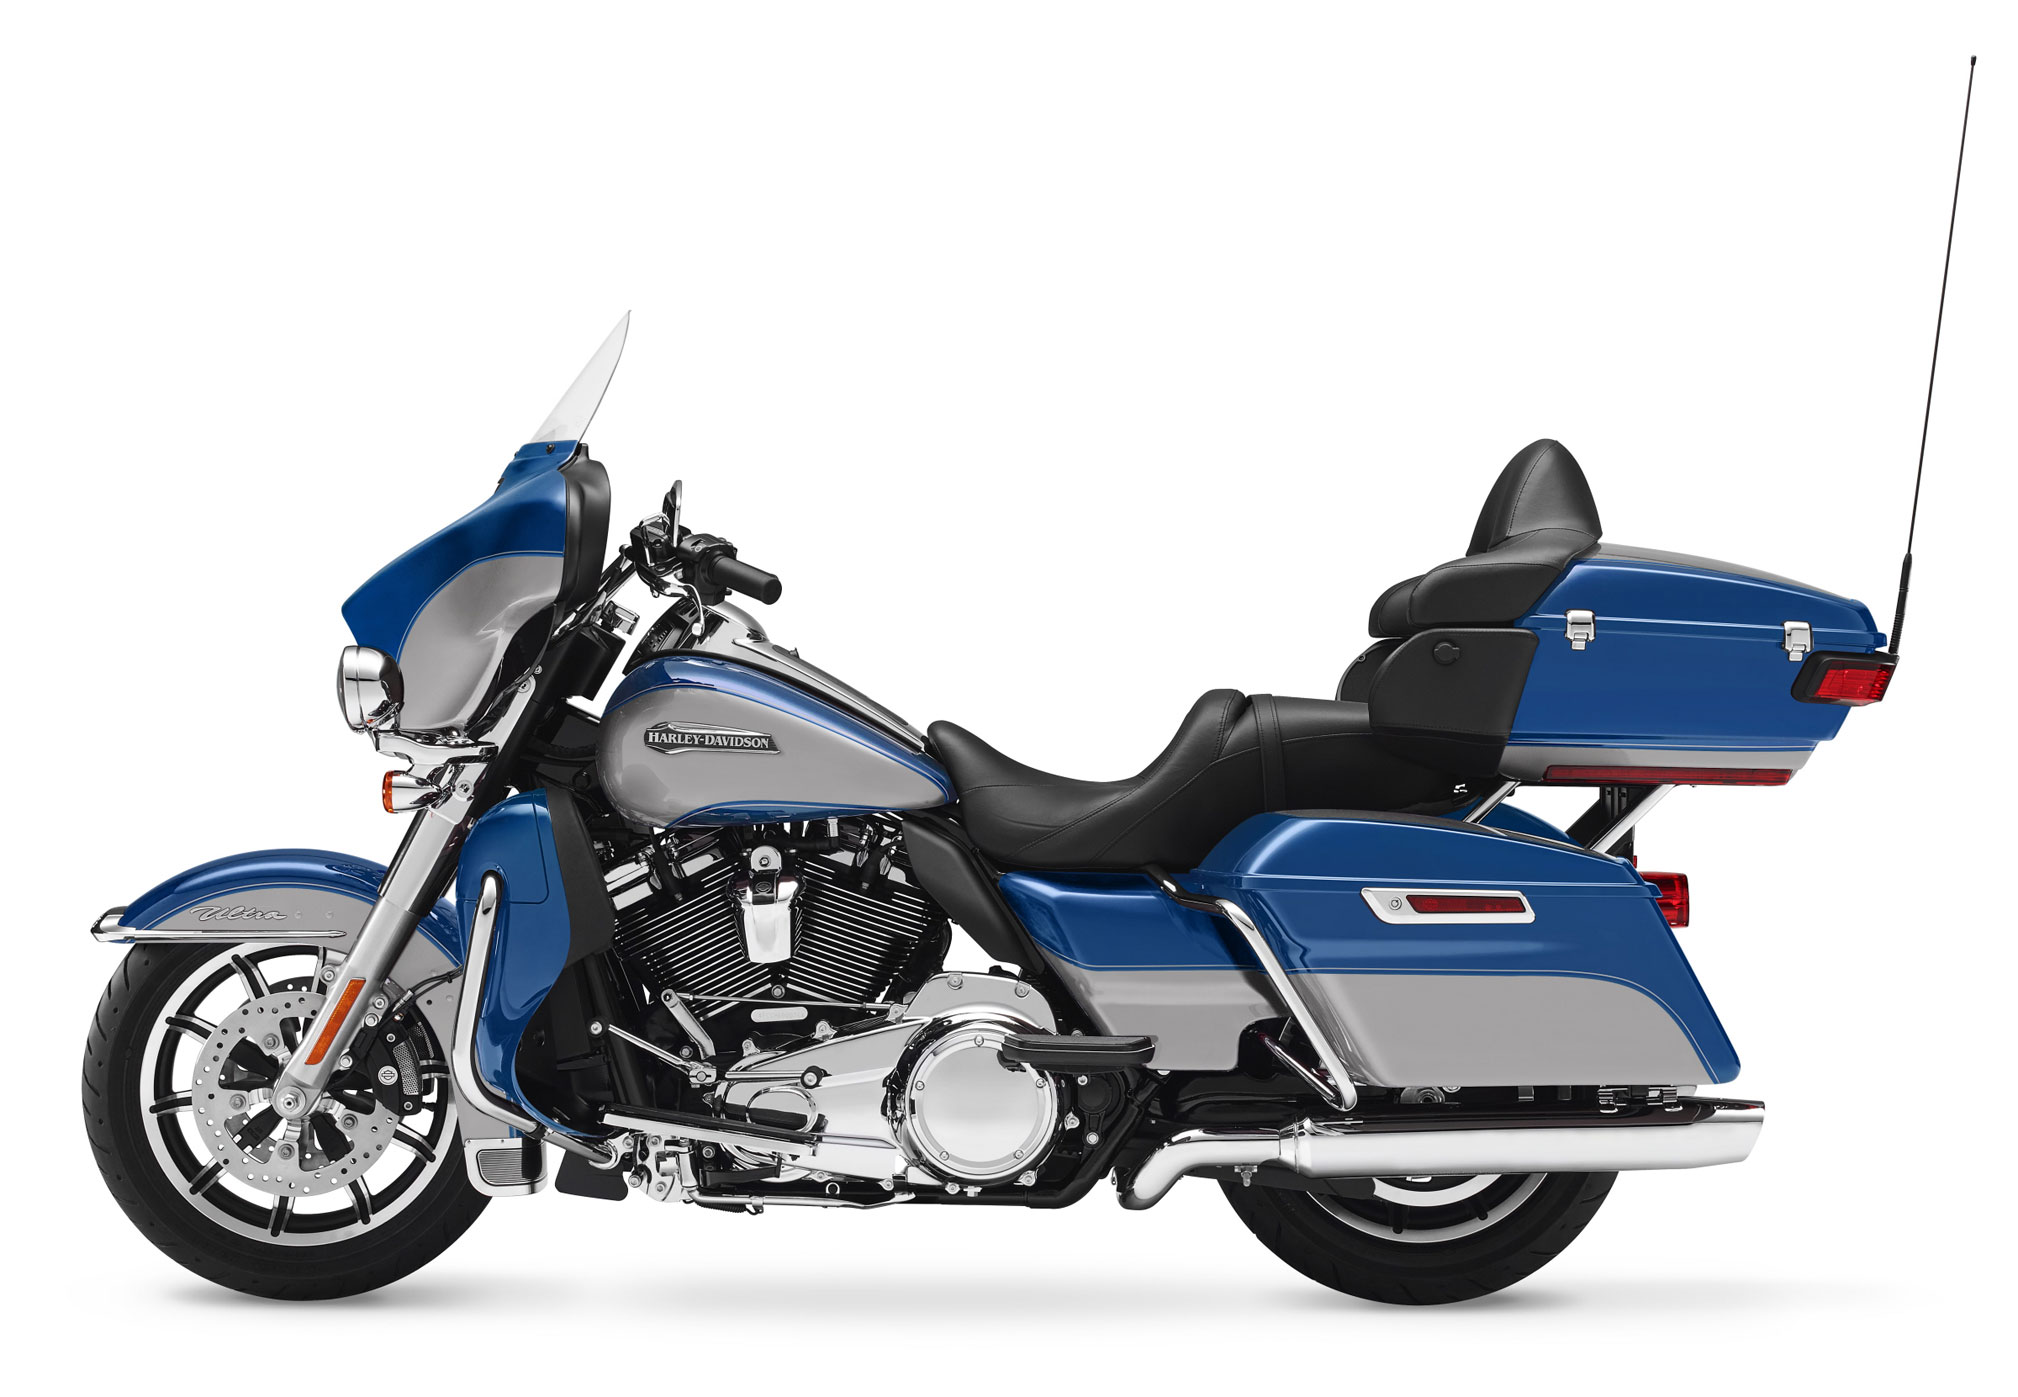 2018 harley davidson electra glide ultra classic review total motorcycle. Black Bedroom Furniture Sets. Home Design Ideas